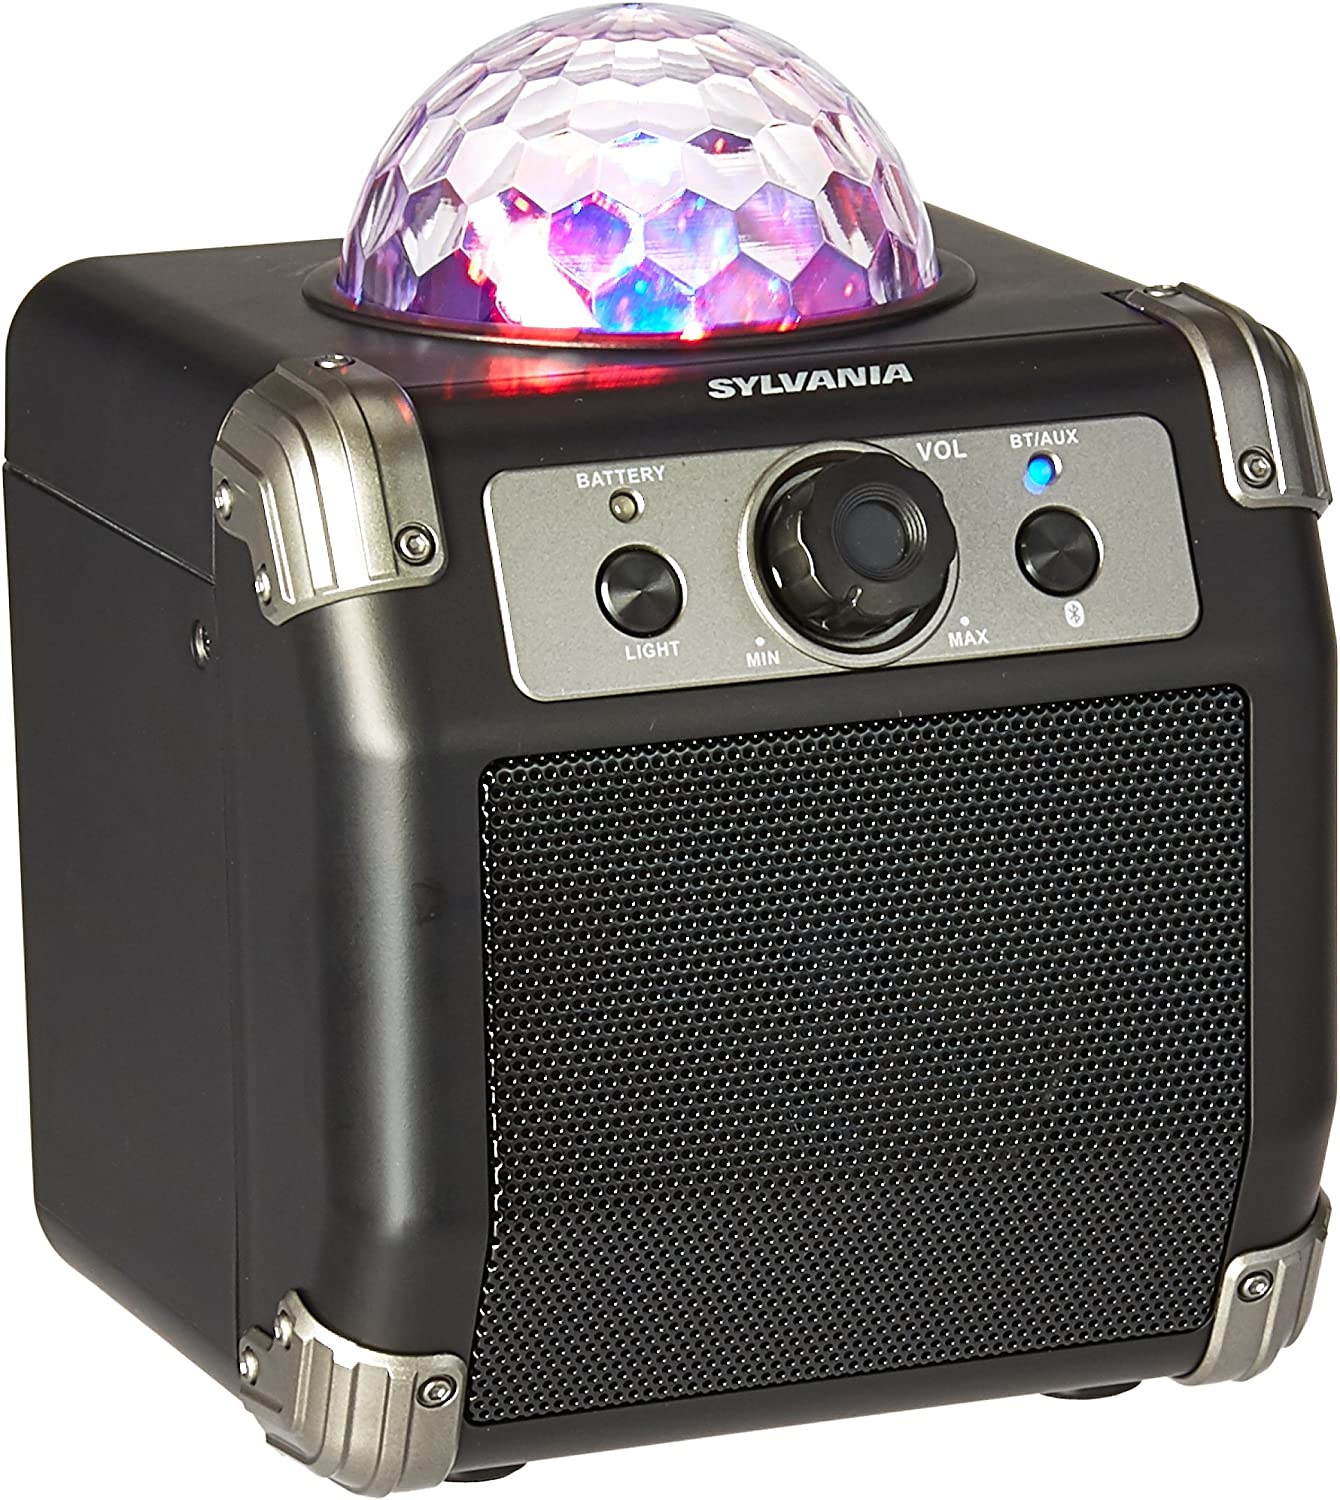 Sylvania Bluetooth Speaker with Disco Ball Top